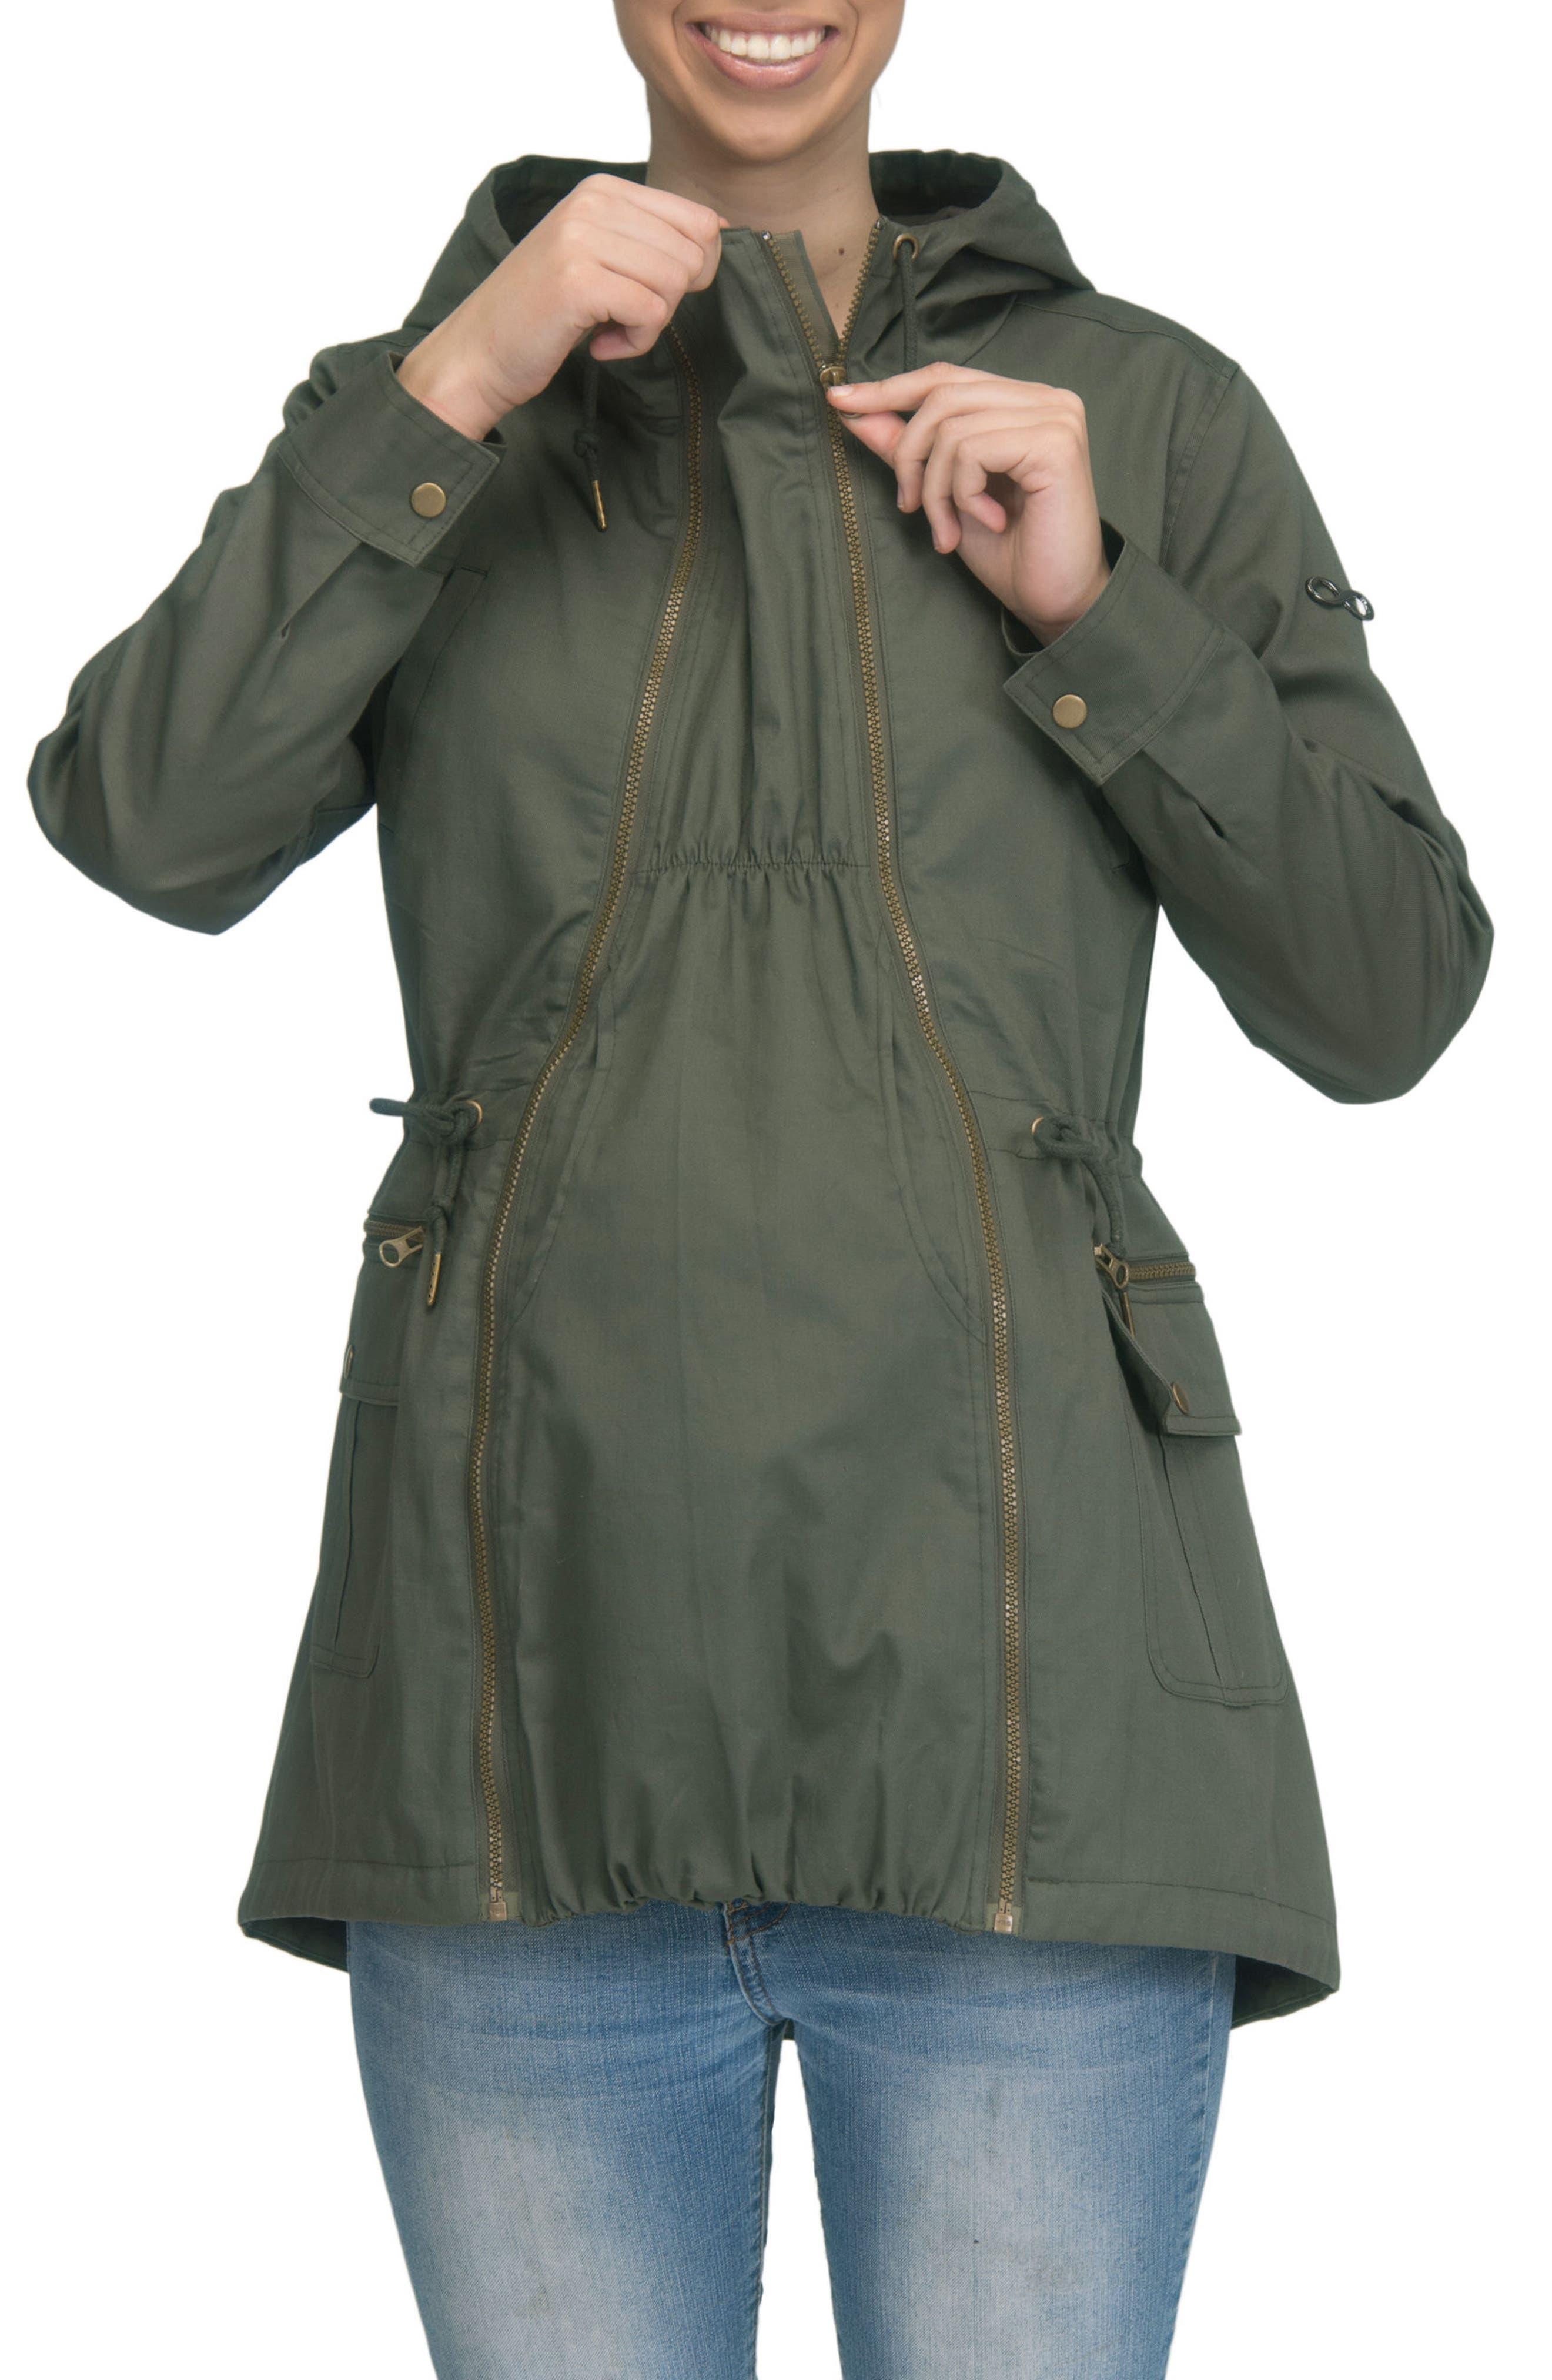 Convertible Military 3-in-1 Maternity/Nursing Jacket,                             Alternate thumbnail 7, color,                             KHAKI GREEN